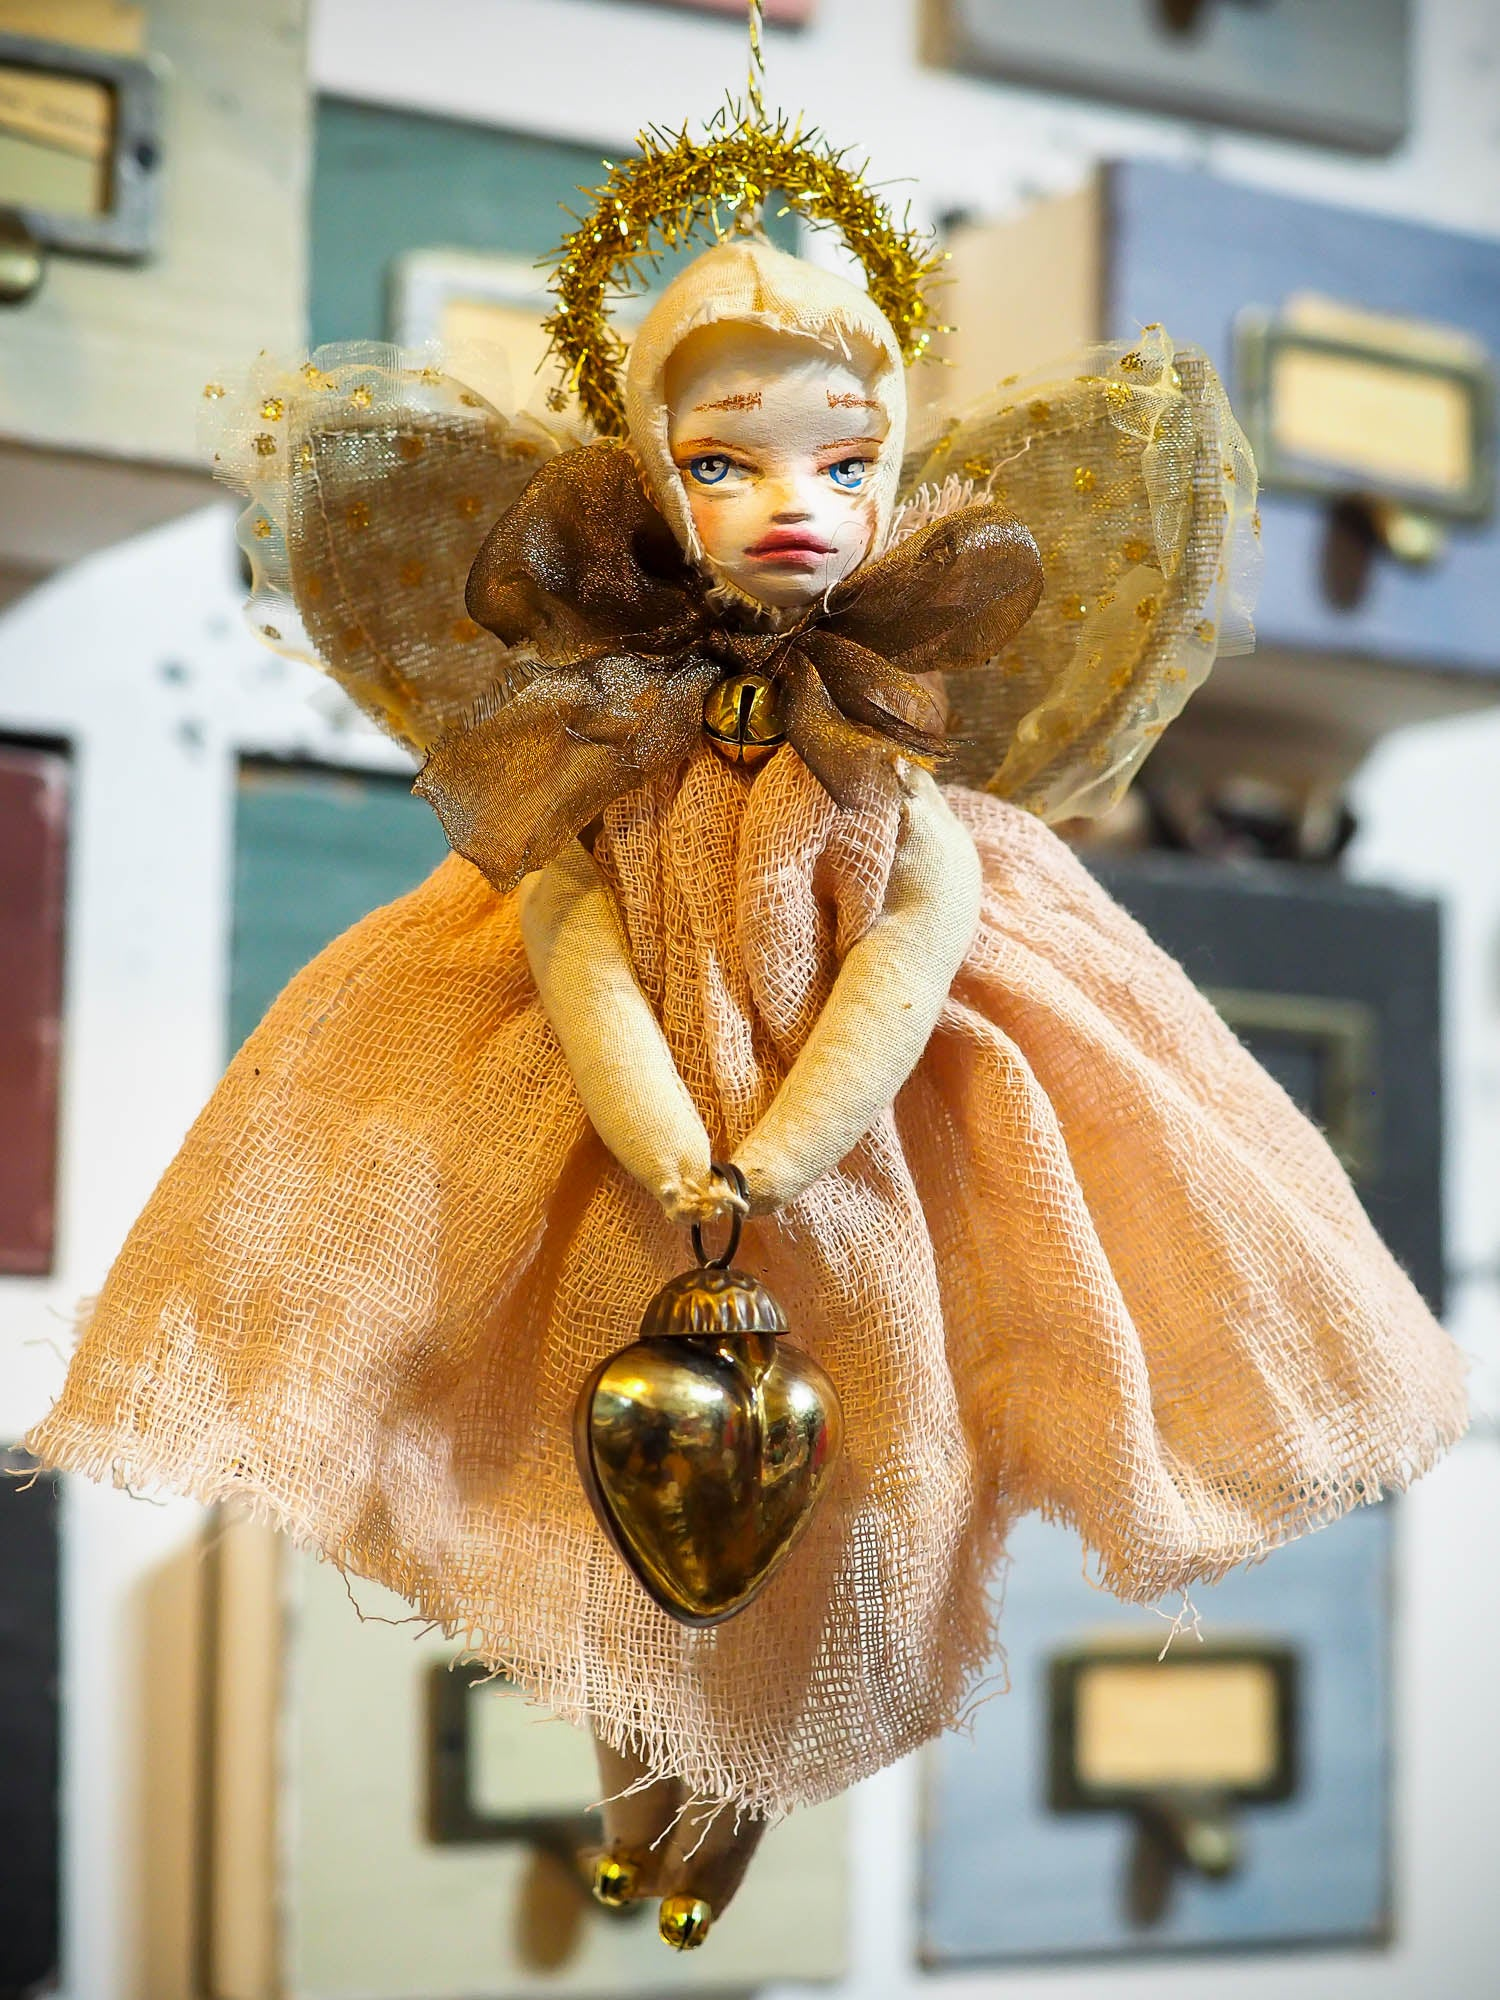 GABRIELLE - An angel ornament for your Christmas tree by Danita Art, Art Doll by Danita Art